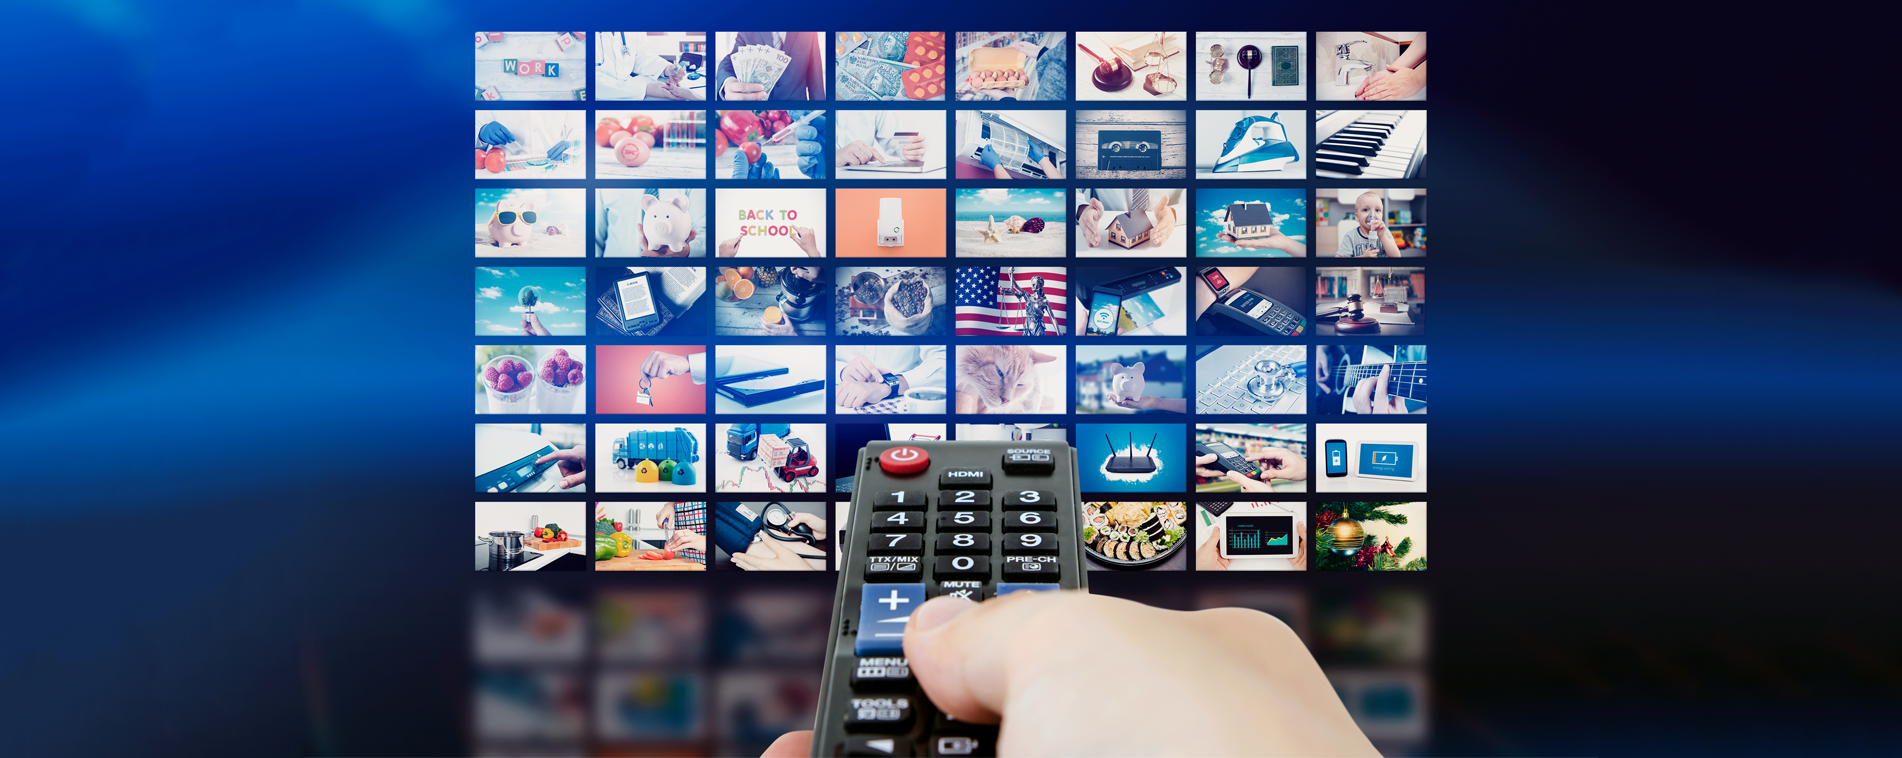 Connected Television